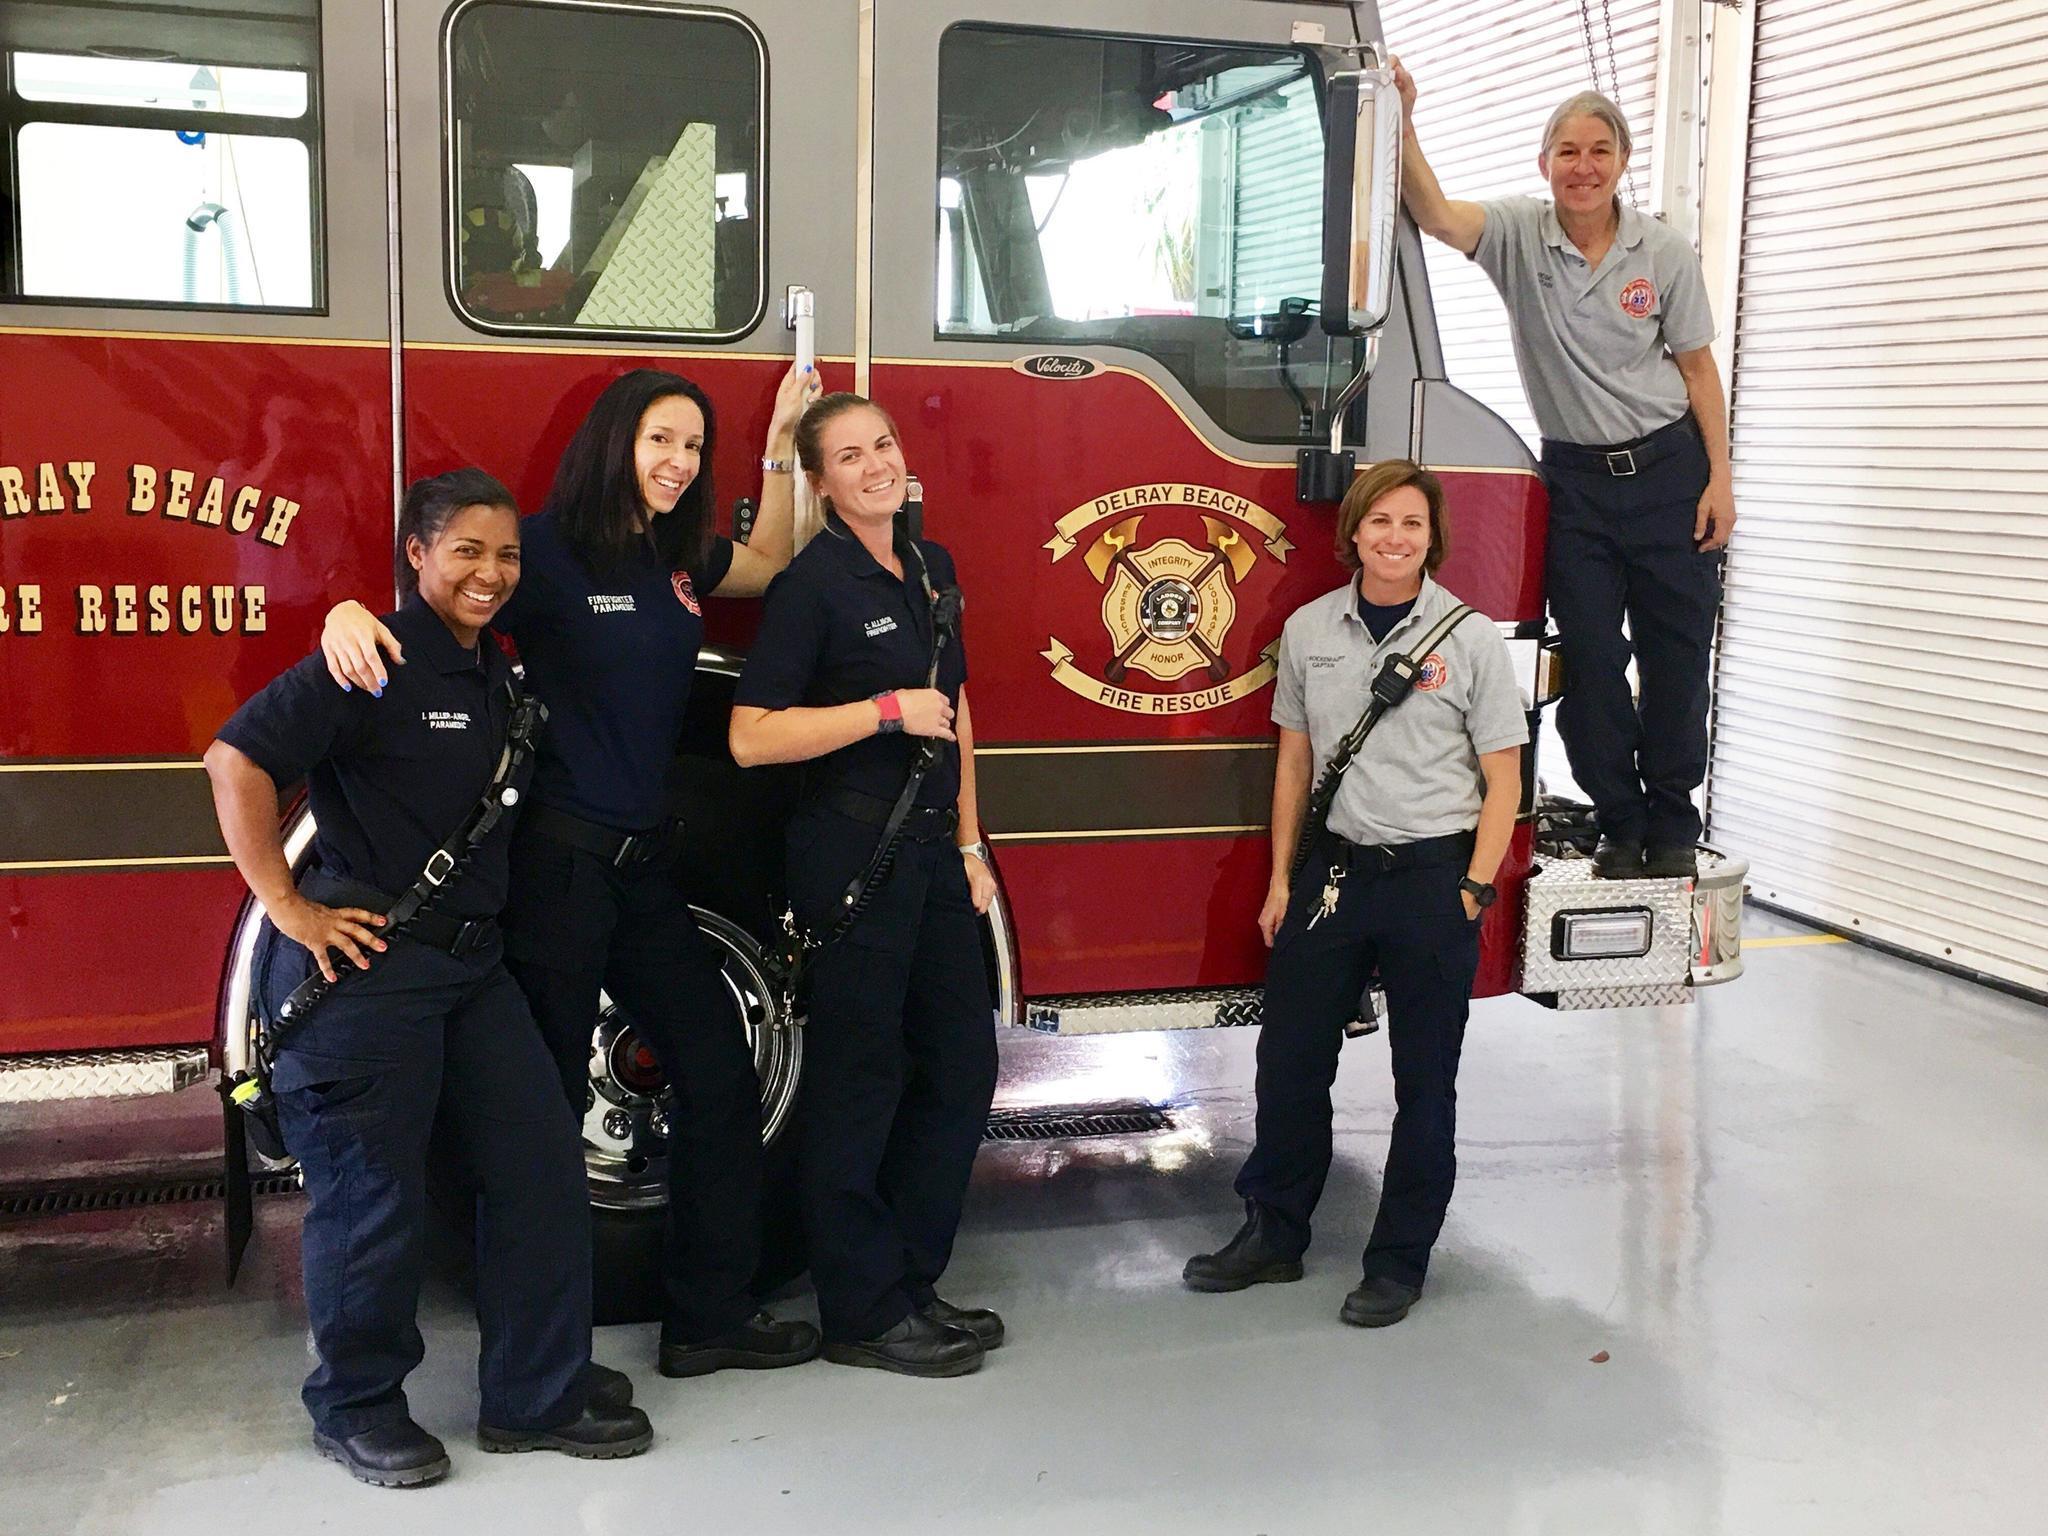 Women Of Delray Beach Fire Rescue Share Equal Pion For Saving Lives Sun Sentinel